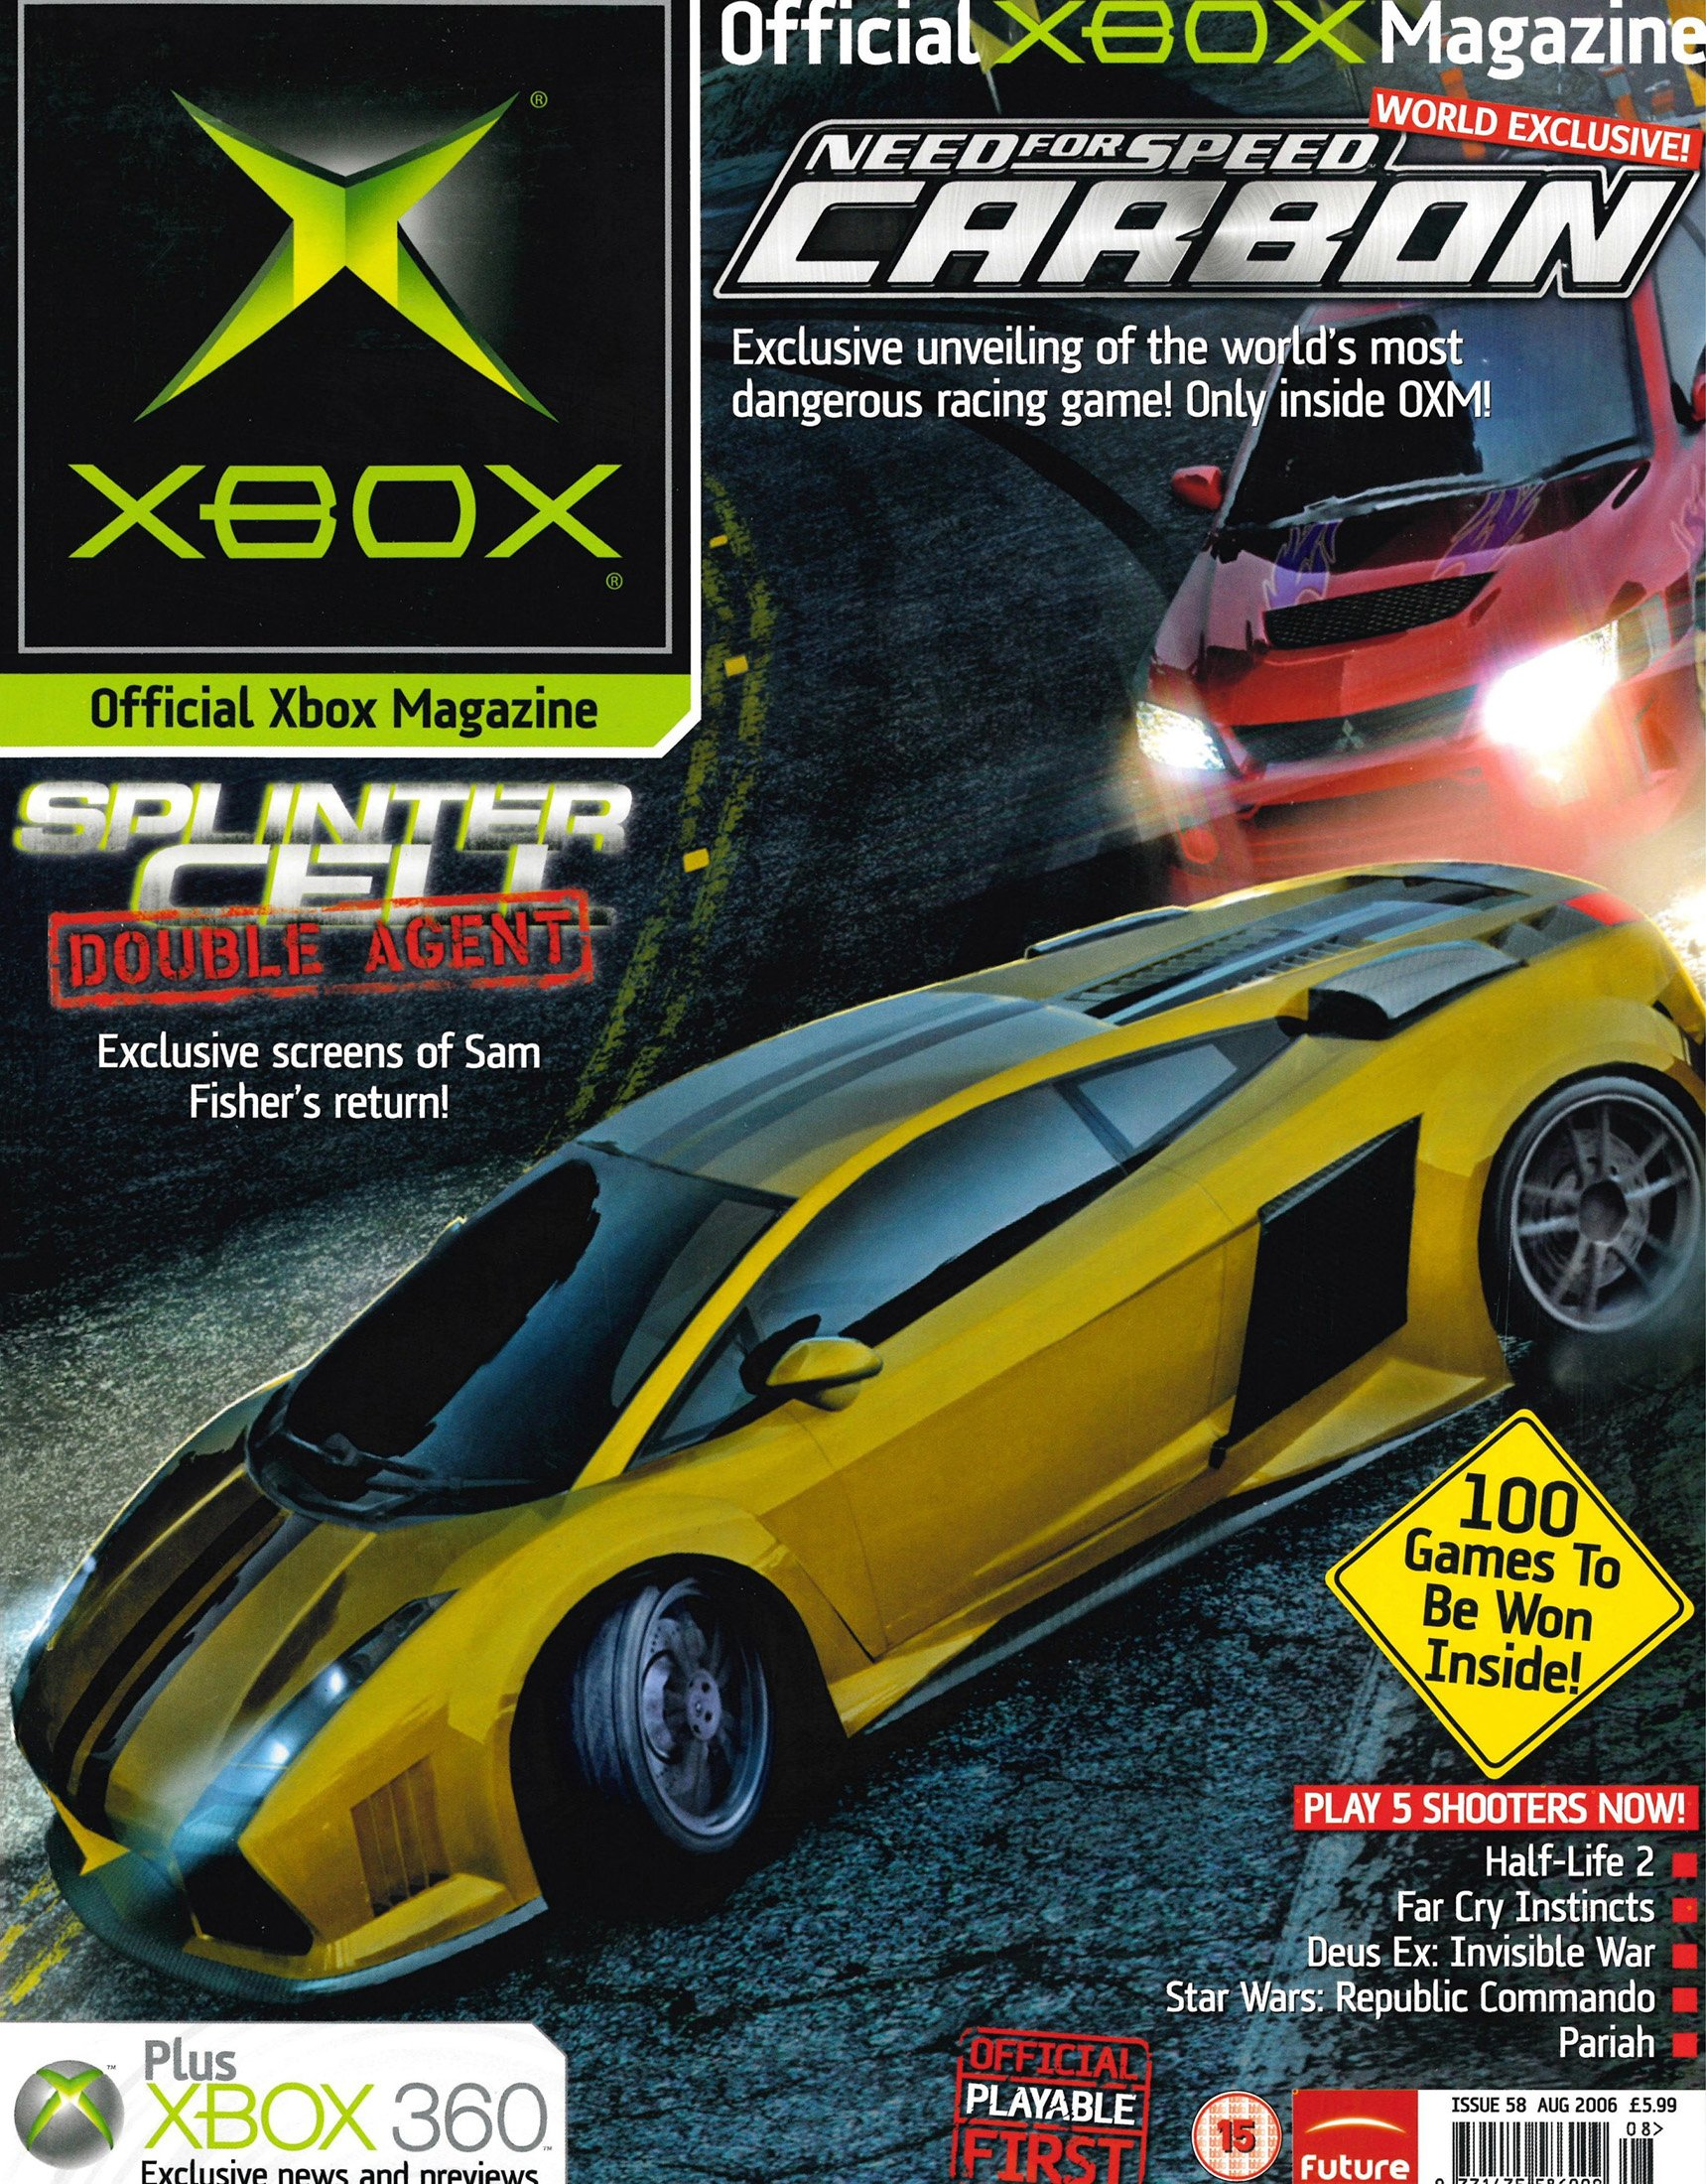 Official UK Xbox Magazine Issue 58 - August 2006